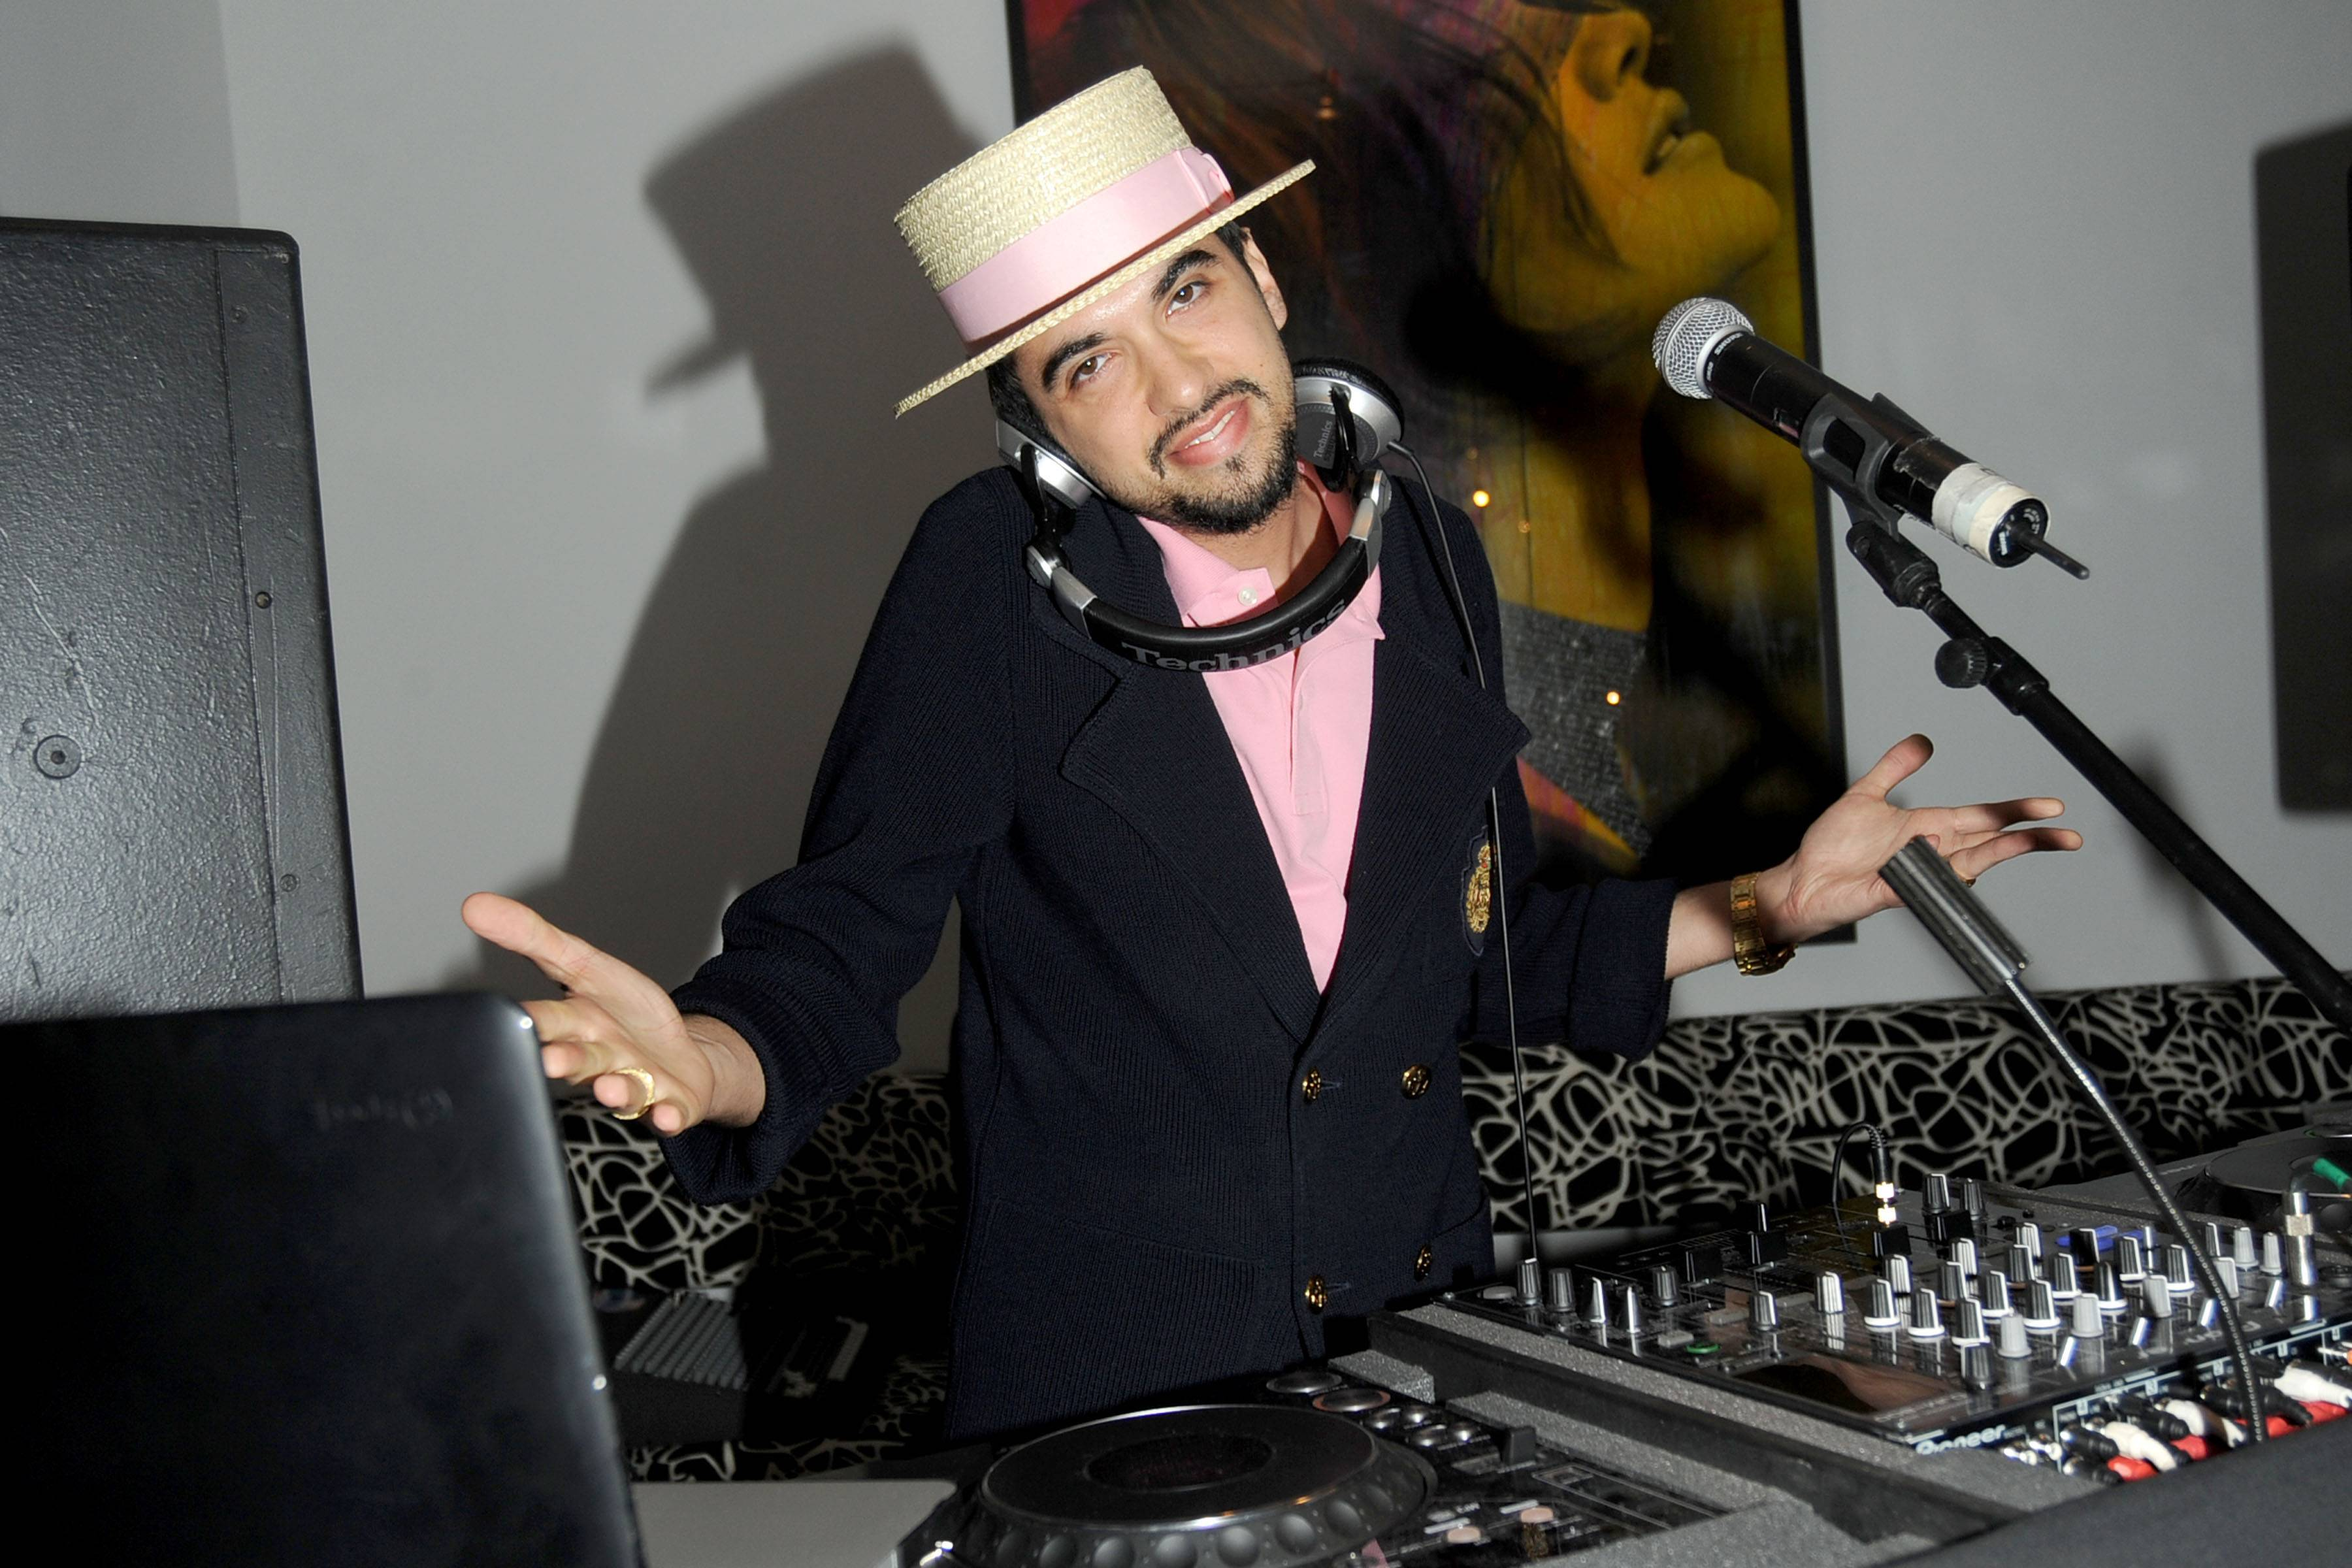 DJ Cassidy. The Institute for Civic Leadership 2010 Spring Benefit at DVF Studio June 15, 2010. Photo credit-Patrick McMullan